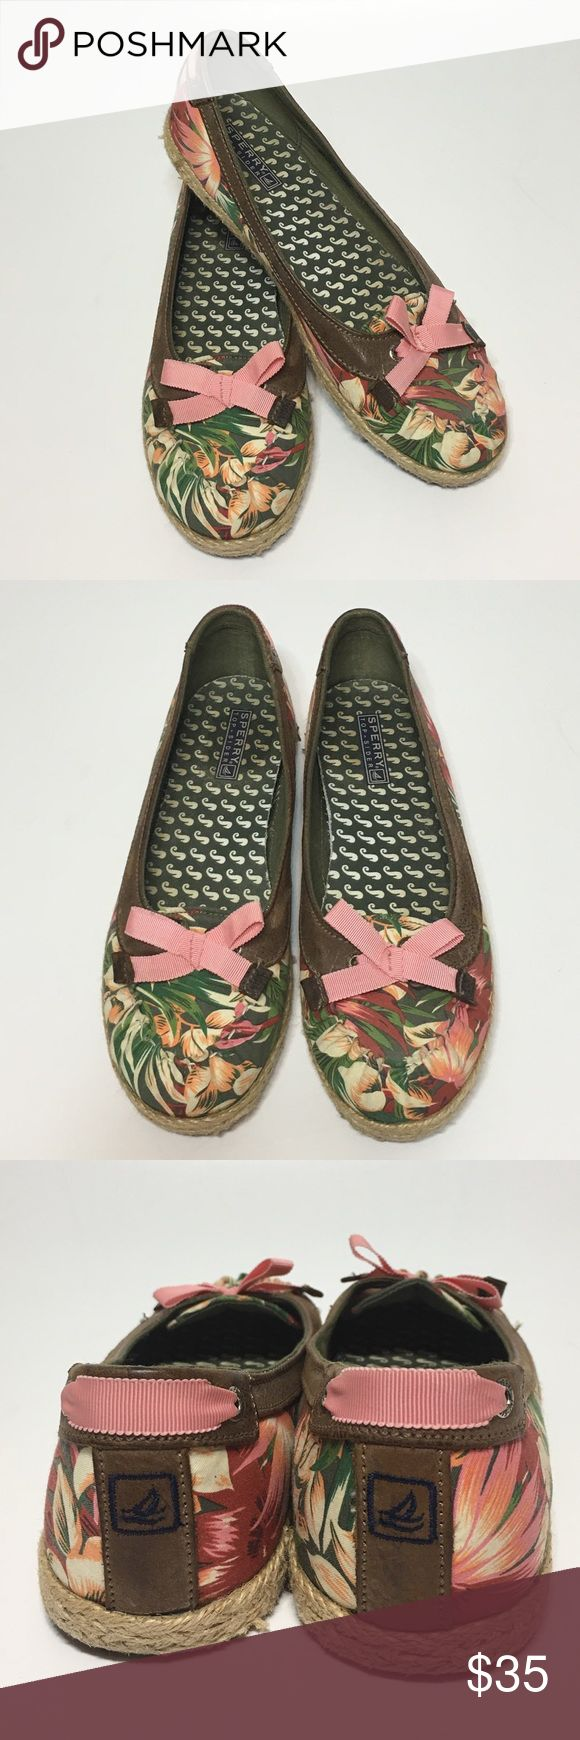 Sperry Top Sider Martinique Floral Espadrilles Sperry Top Sider Martinique floral boat shoe espadrilles ballet flats. They are a size 10. Has a brown leather trim around opening and canvas outer. These are a very cute pair of shoes!! The floral patter is beautiful! Sperry Top-Sider Shoes Espadrilles